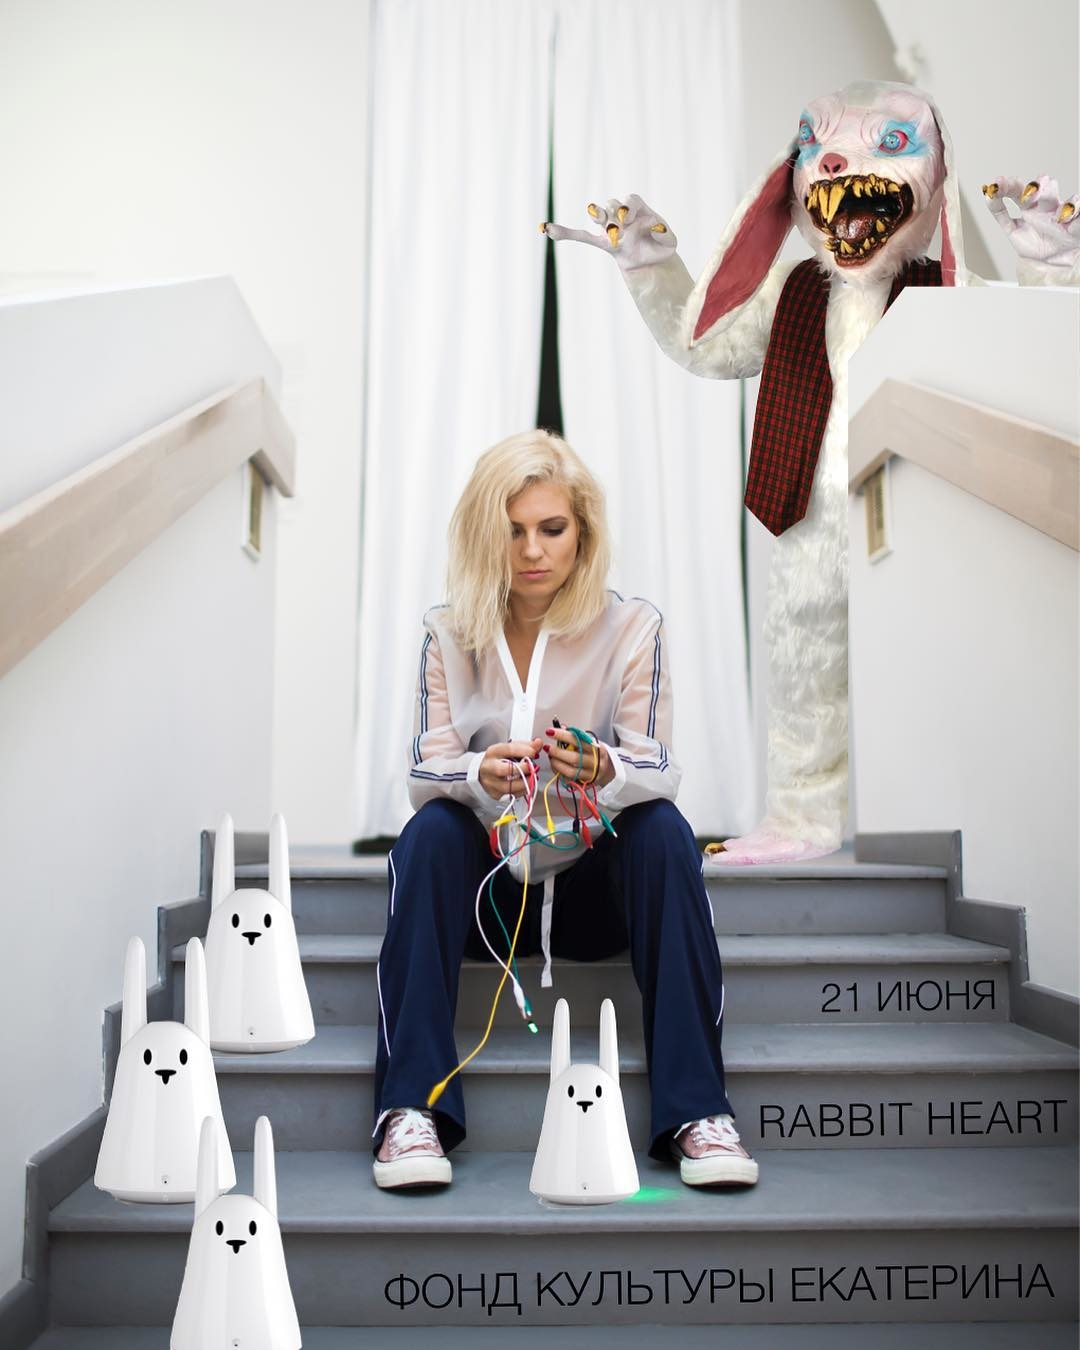 Poster for the RABBIT HEART installation, 2018